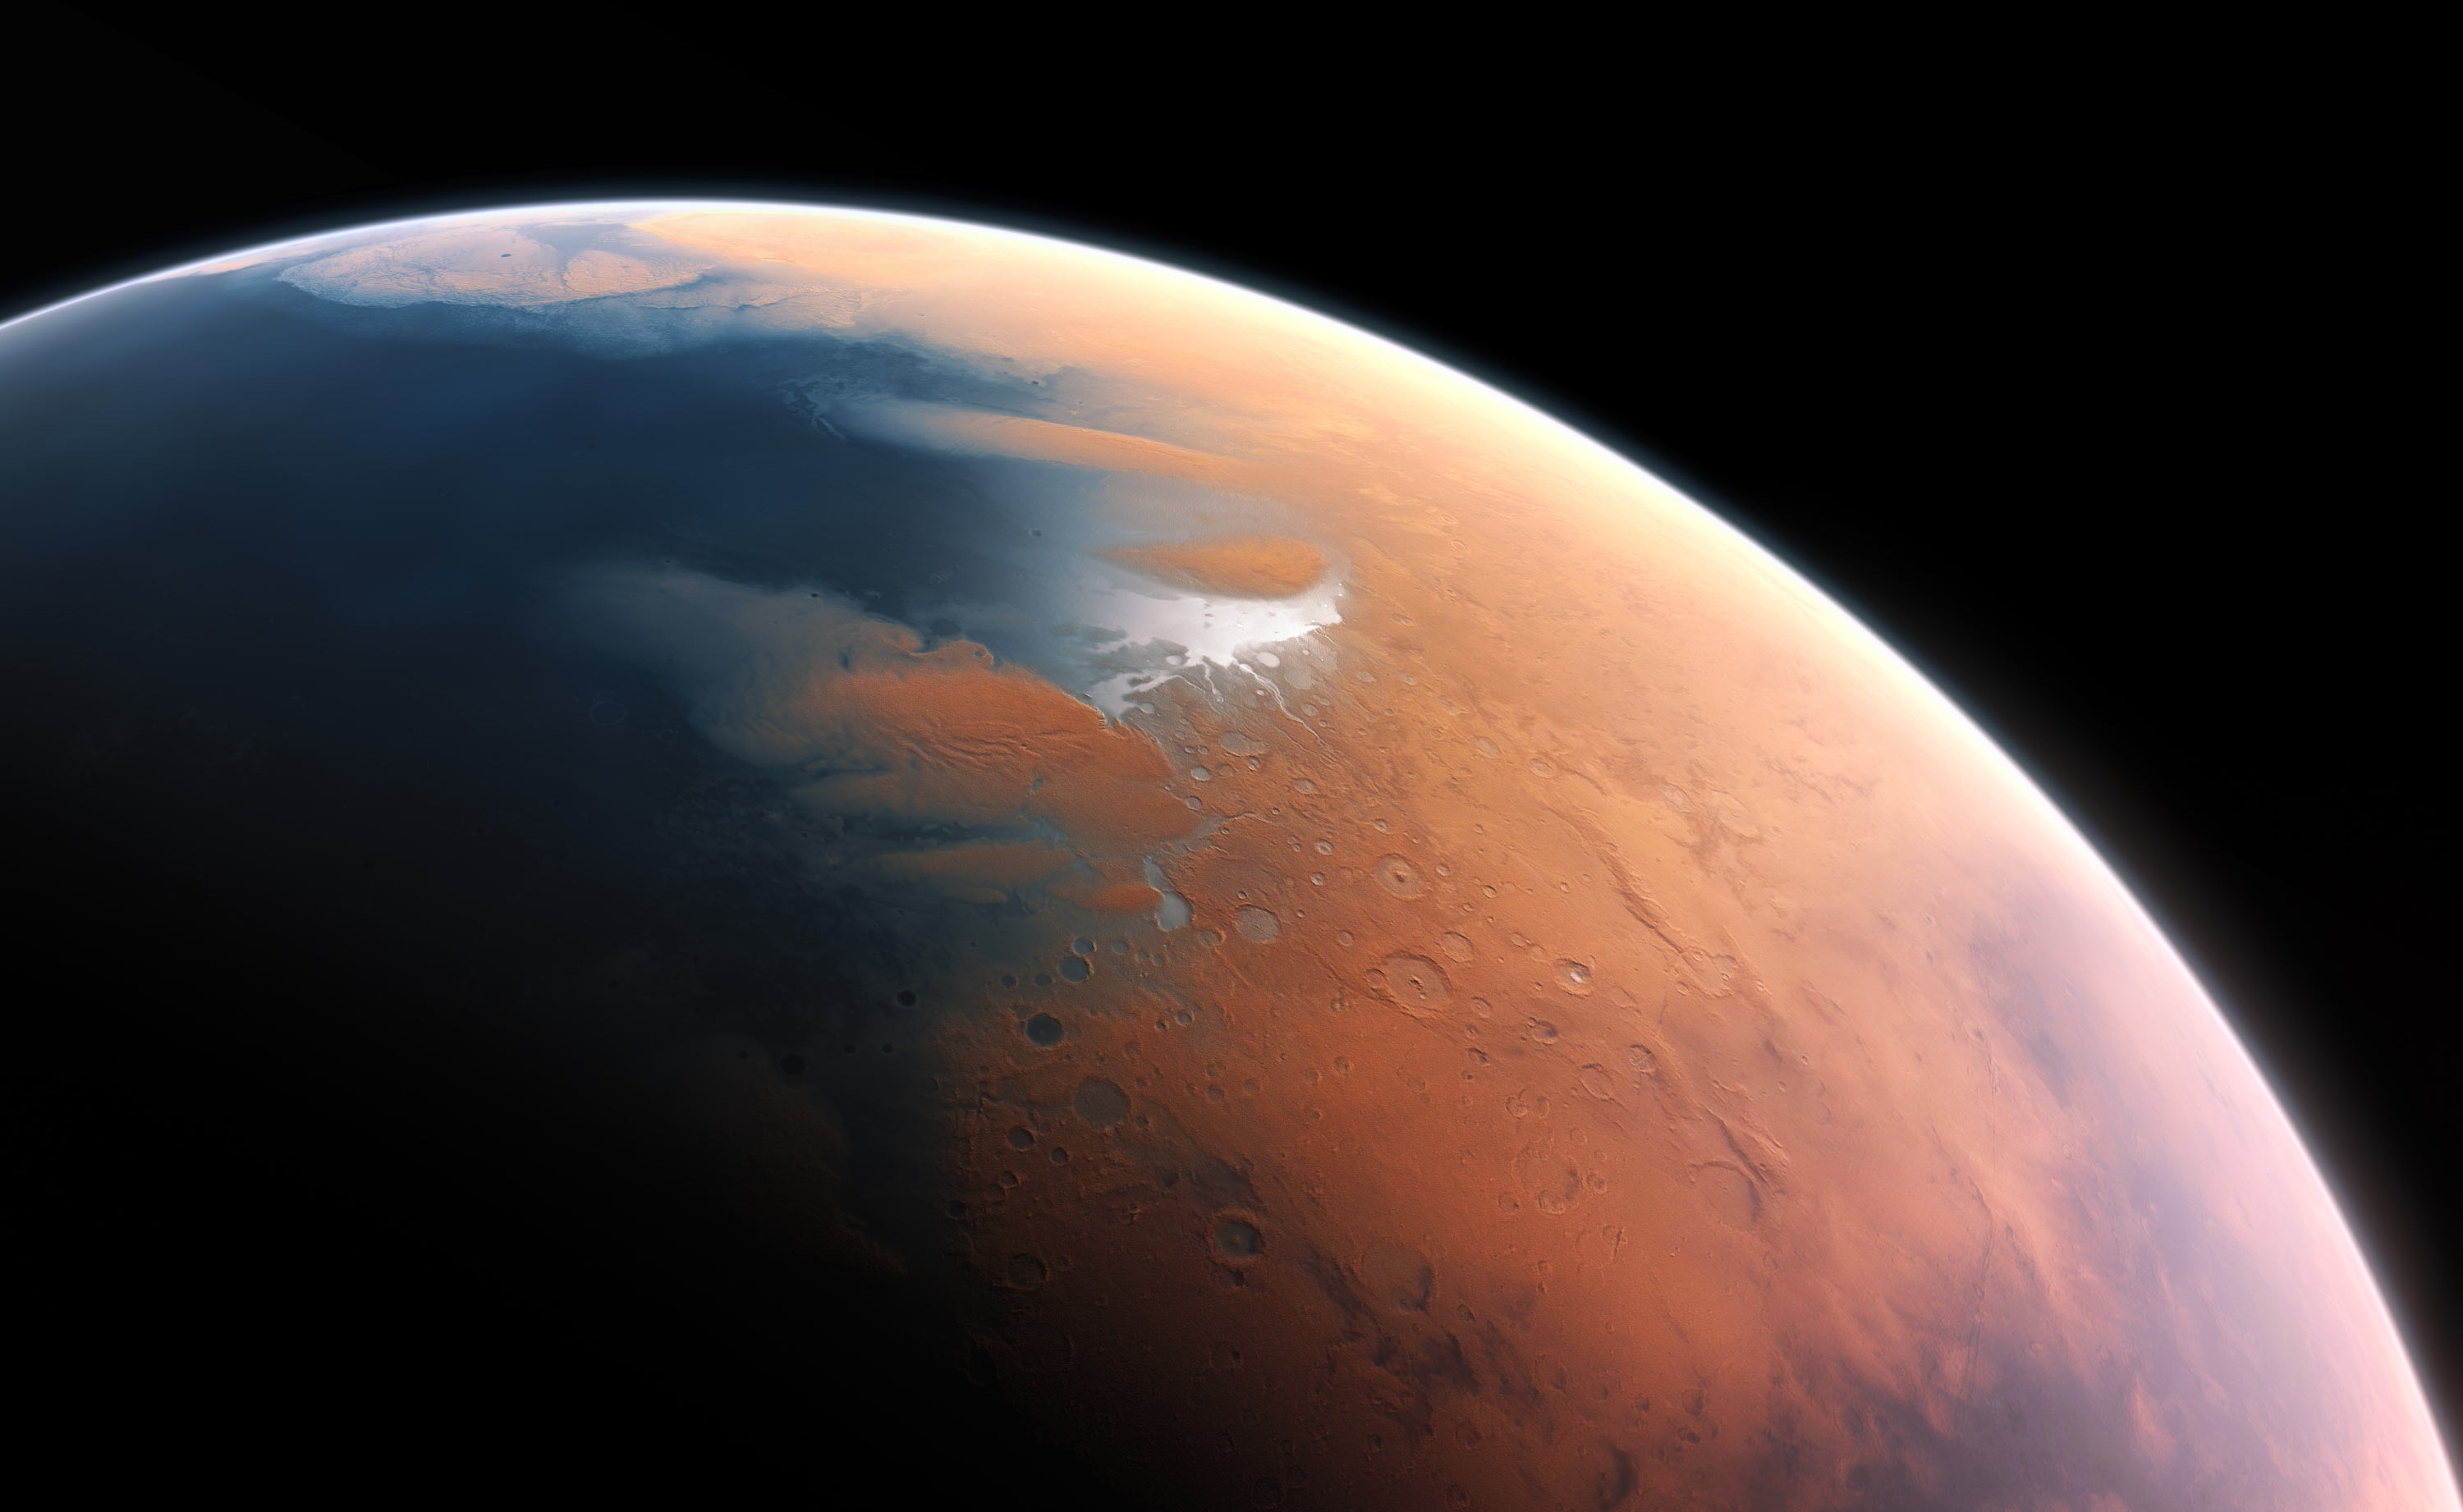 Mars used to have a thicker atmosphere and water on its surface but